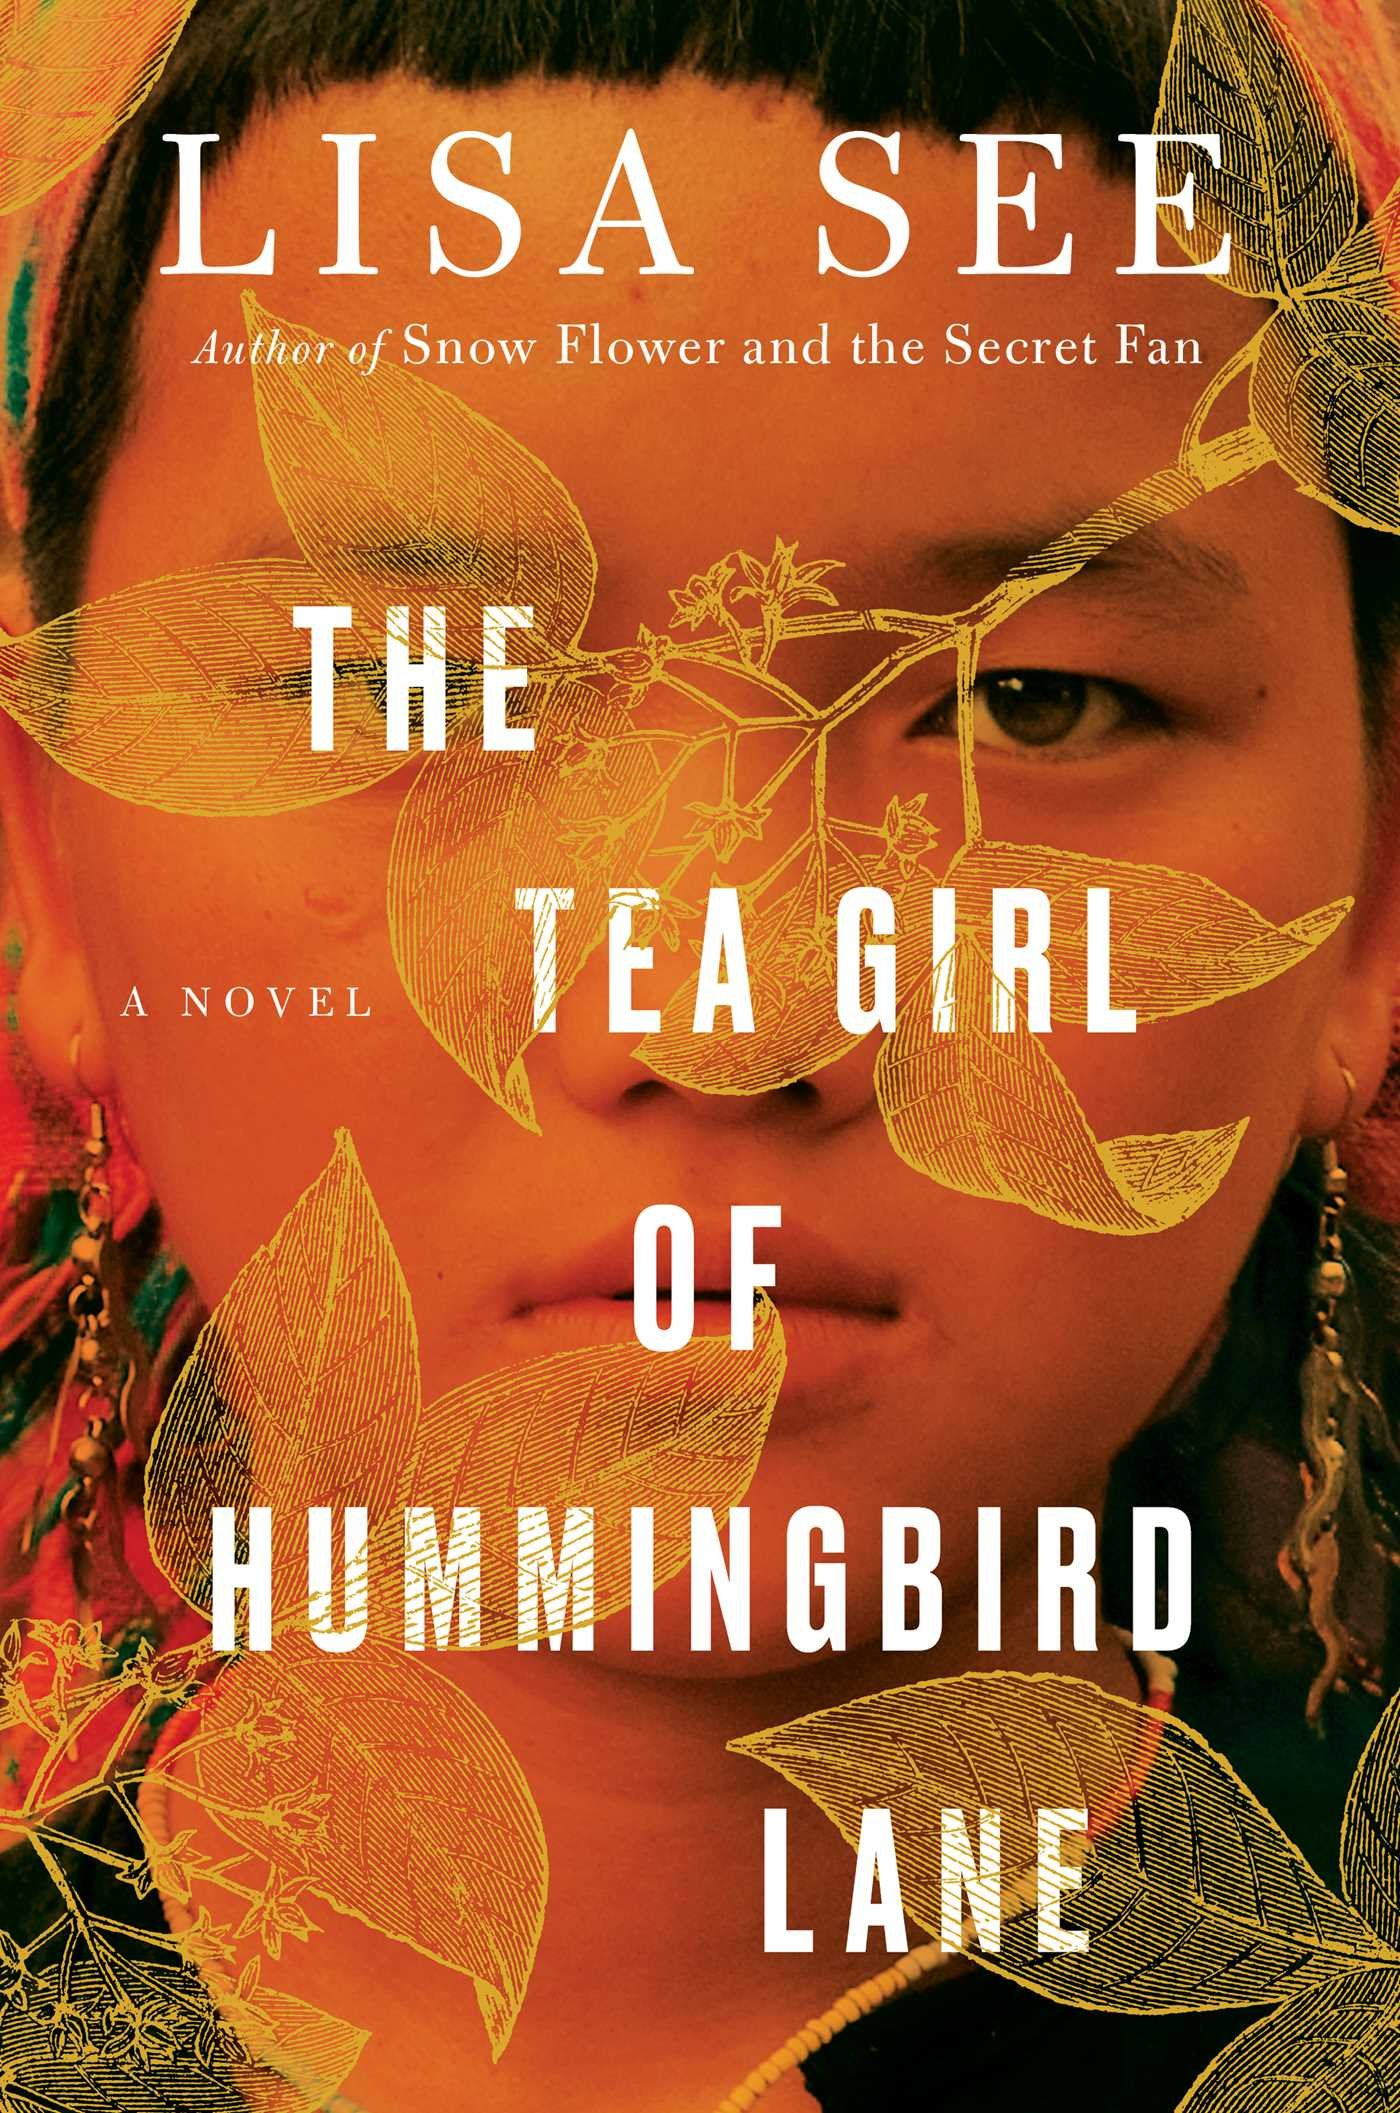 Image result for image the tea girl of hummingbird lane lisa see